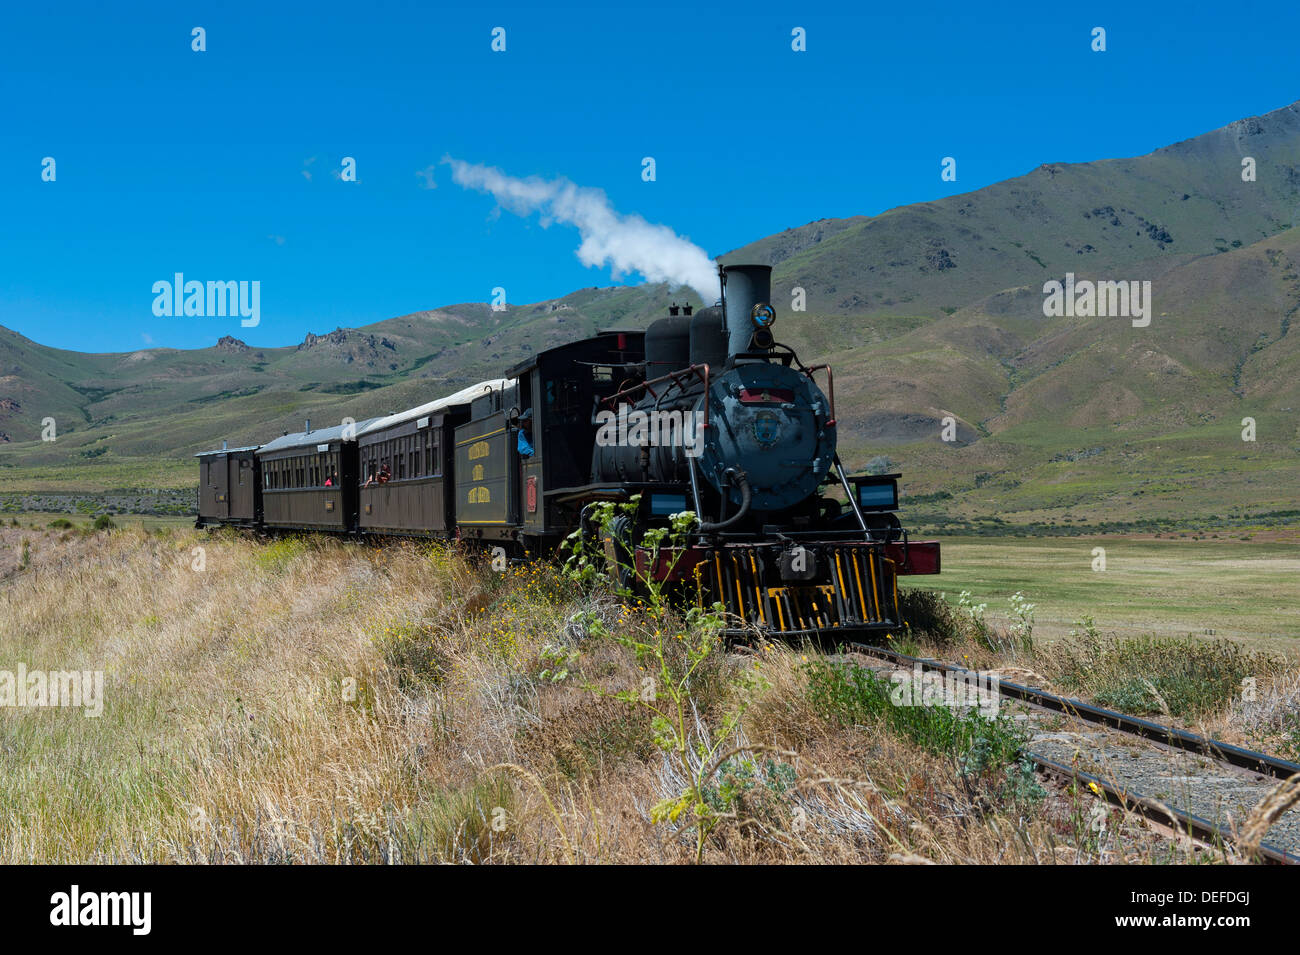 La Trochita, the Old Patagonian Express between Esquel and El Maiten in Chubut Province, Patagonia, Argentina, South America - Stock Image